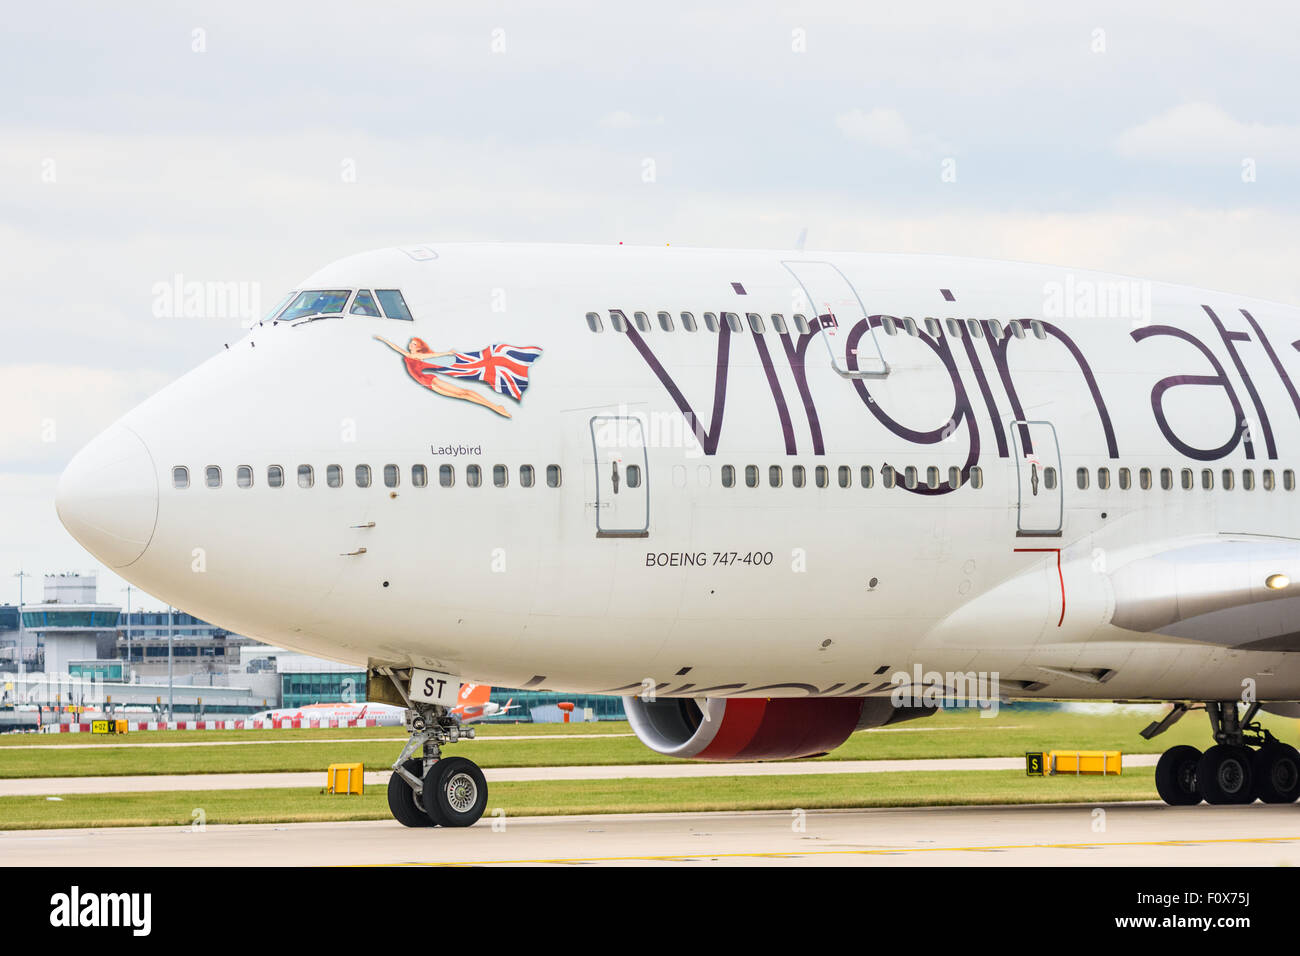 Side view of the front of a Virgin Atlantic Boeing 747-400 aeroplane on the runway at Manchester Airport Stock Photo